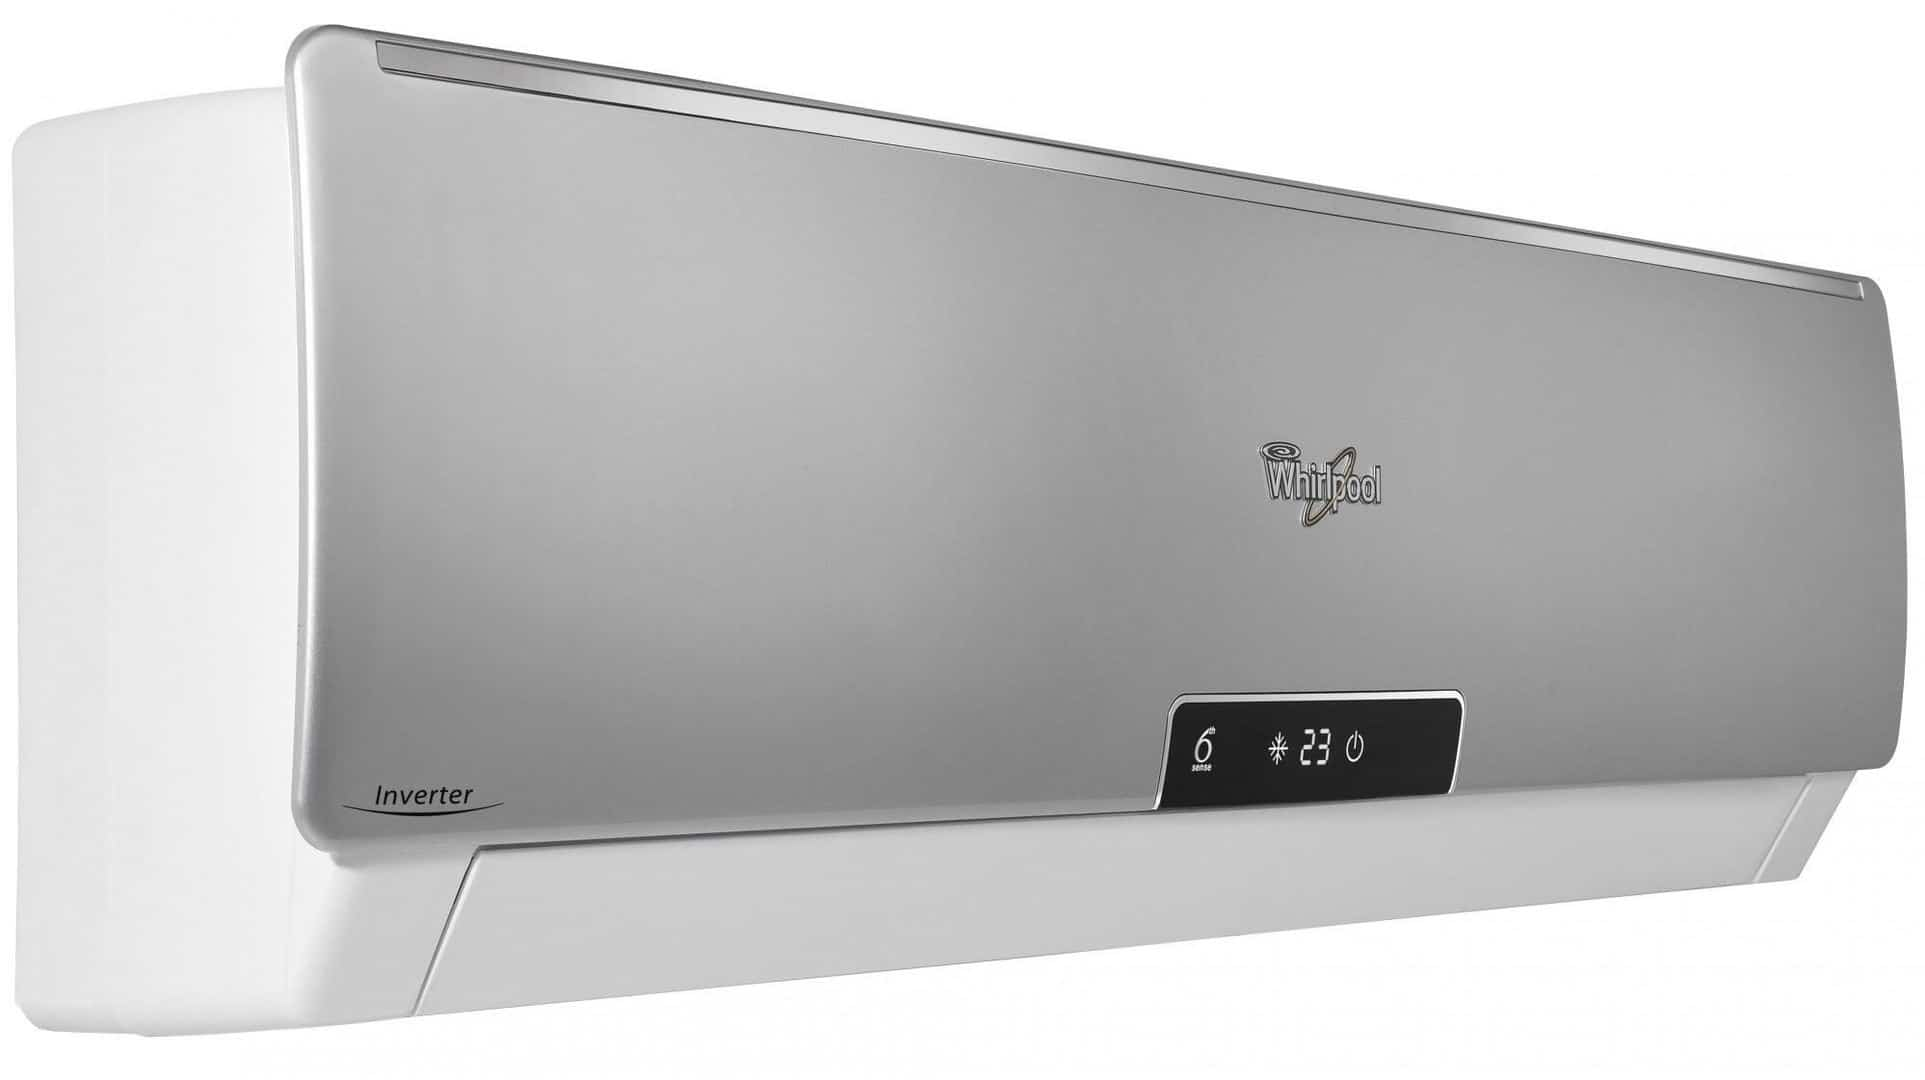 Whirlpool Premium Sail Silver AMD 355/1 - aparat de aer conditionat performant